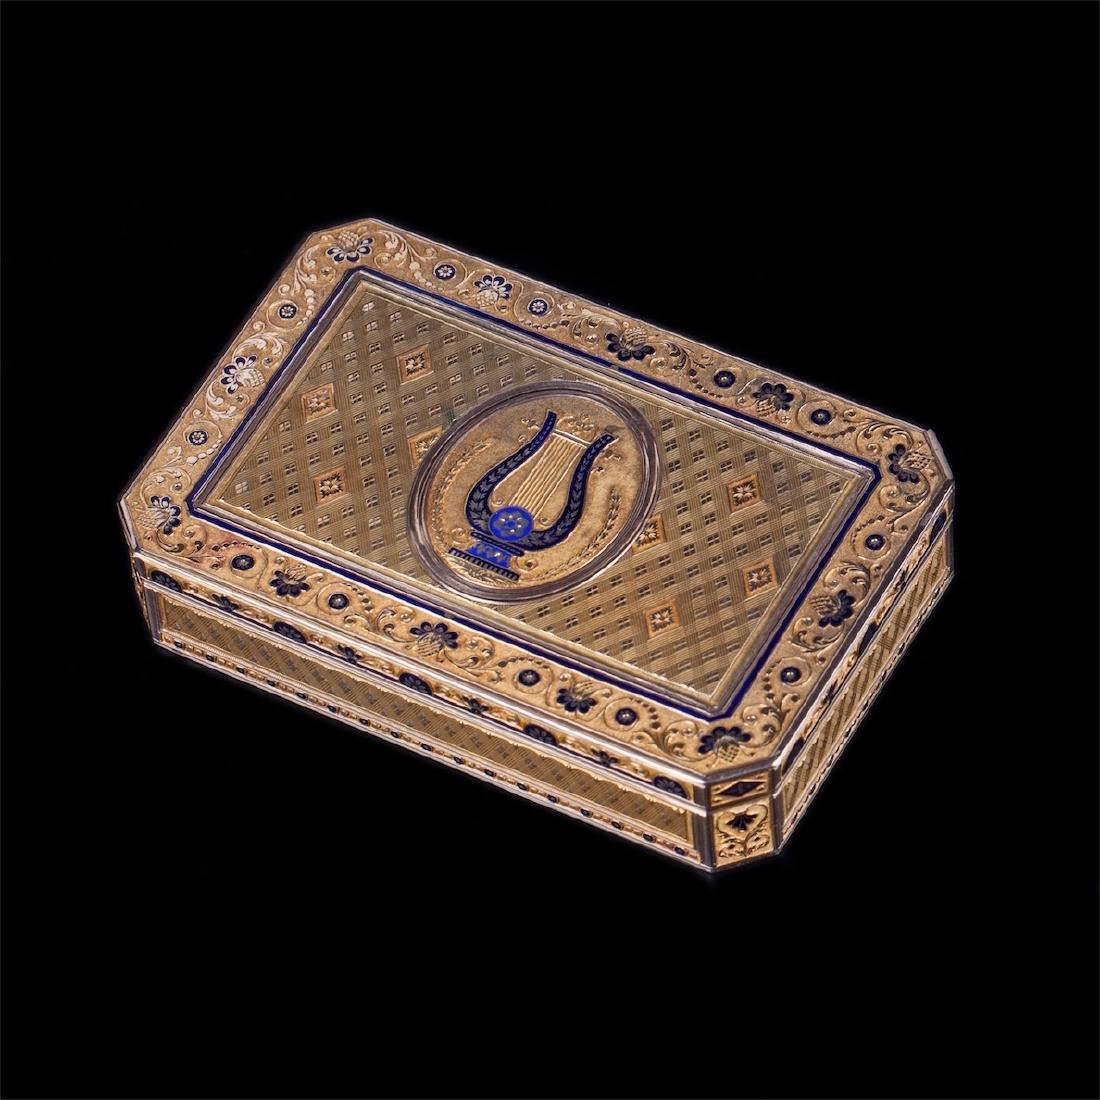 18th century Swiss gold snuff box with harp - 2